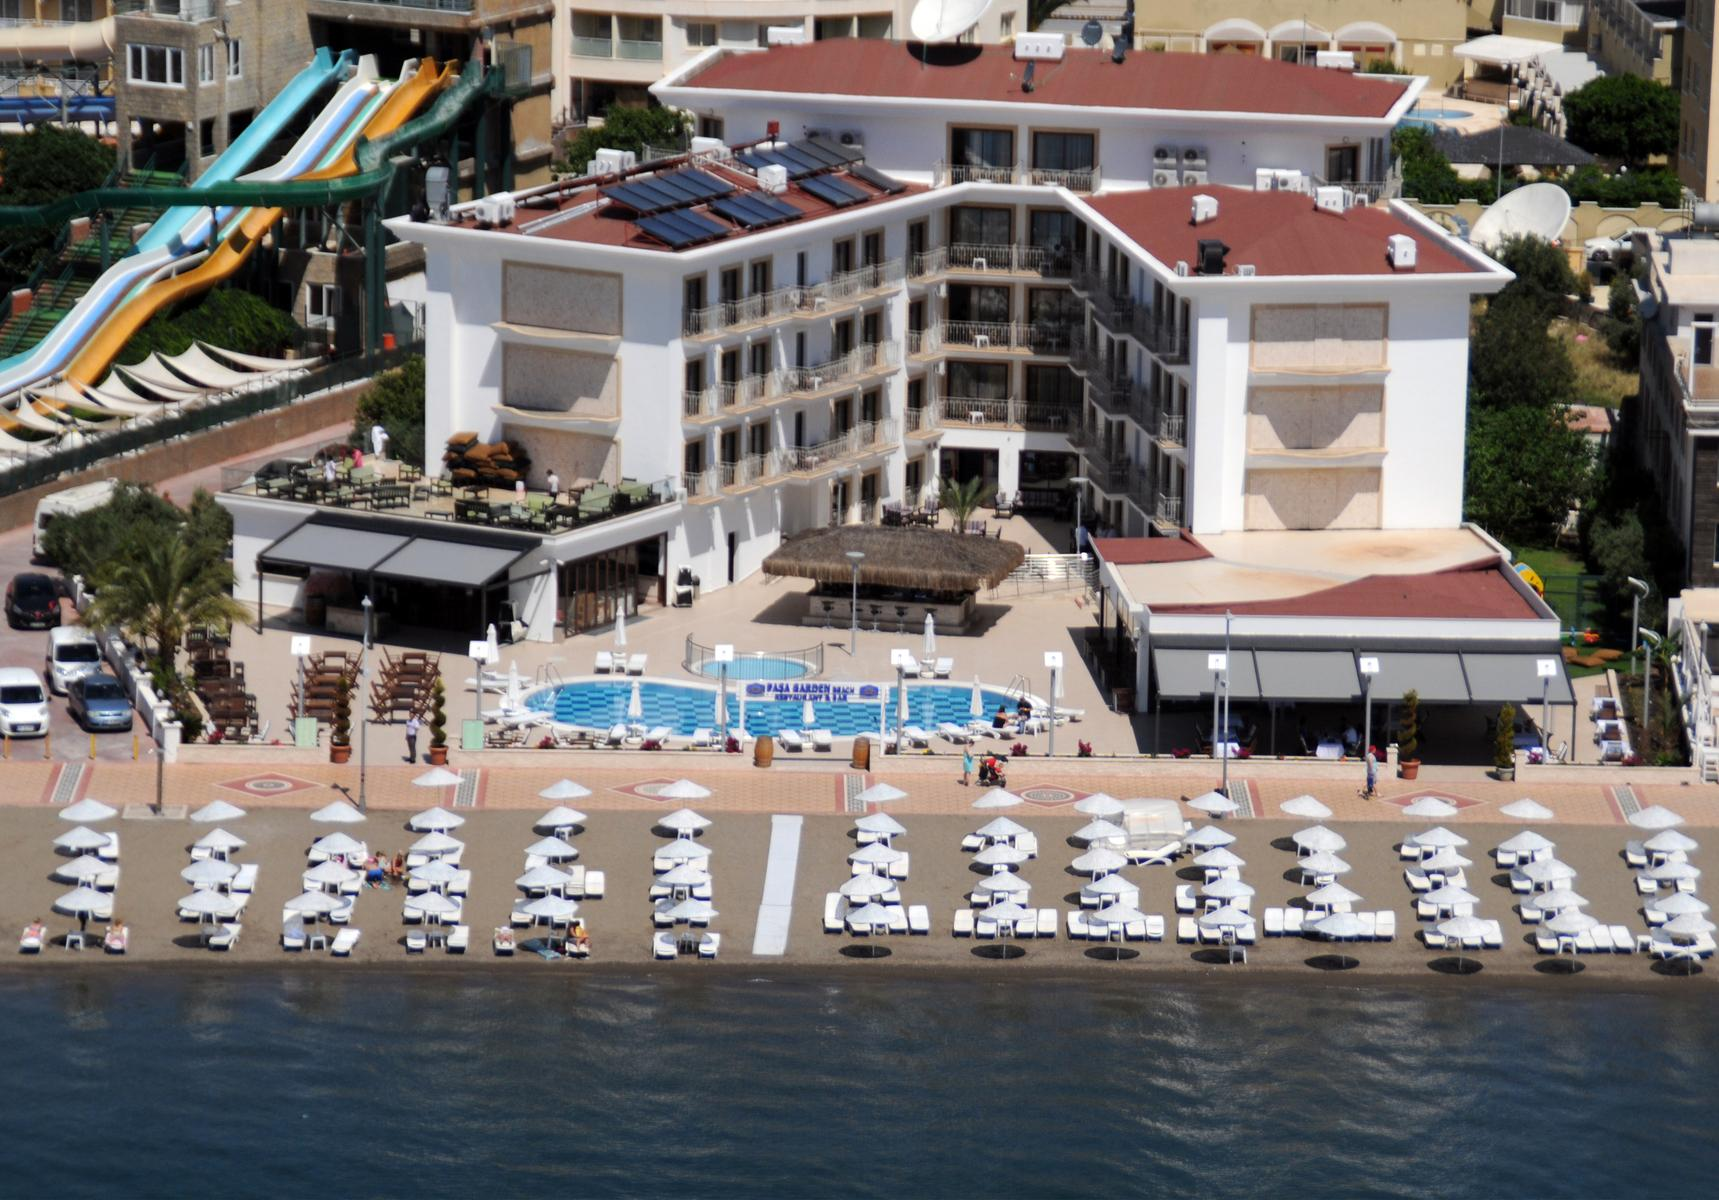 Pasa Garden Beach Hotel in Marmaris, Dalaman, Turkey